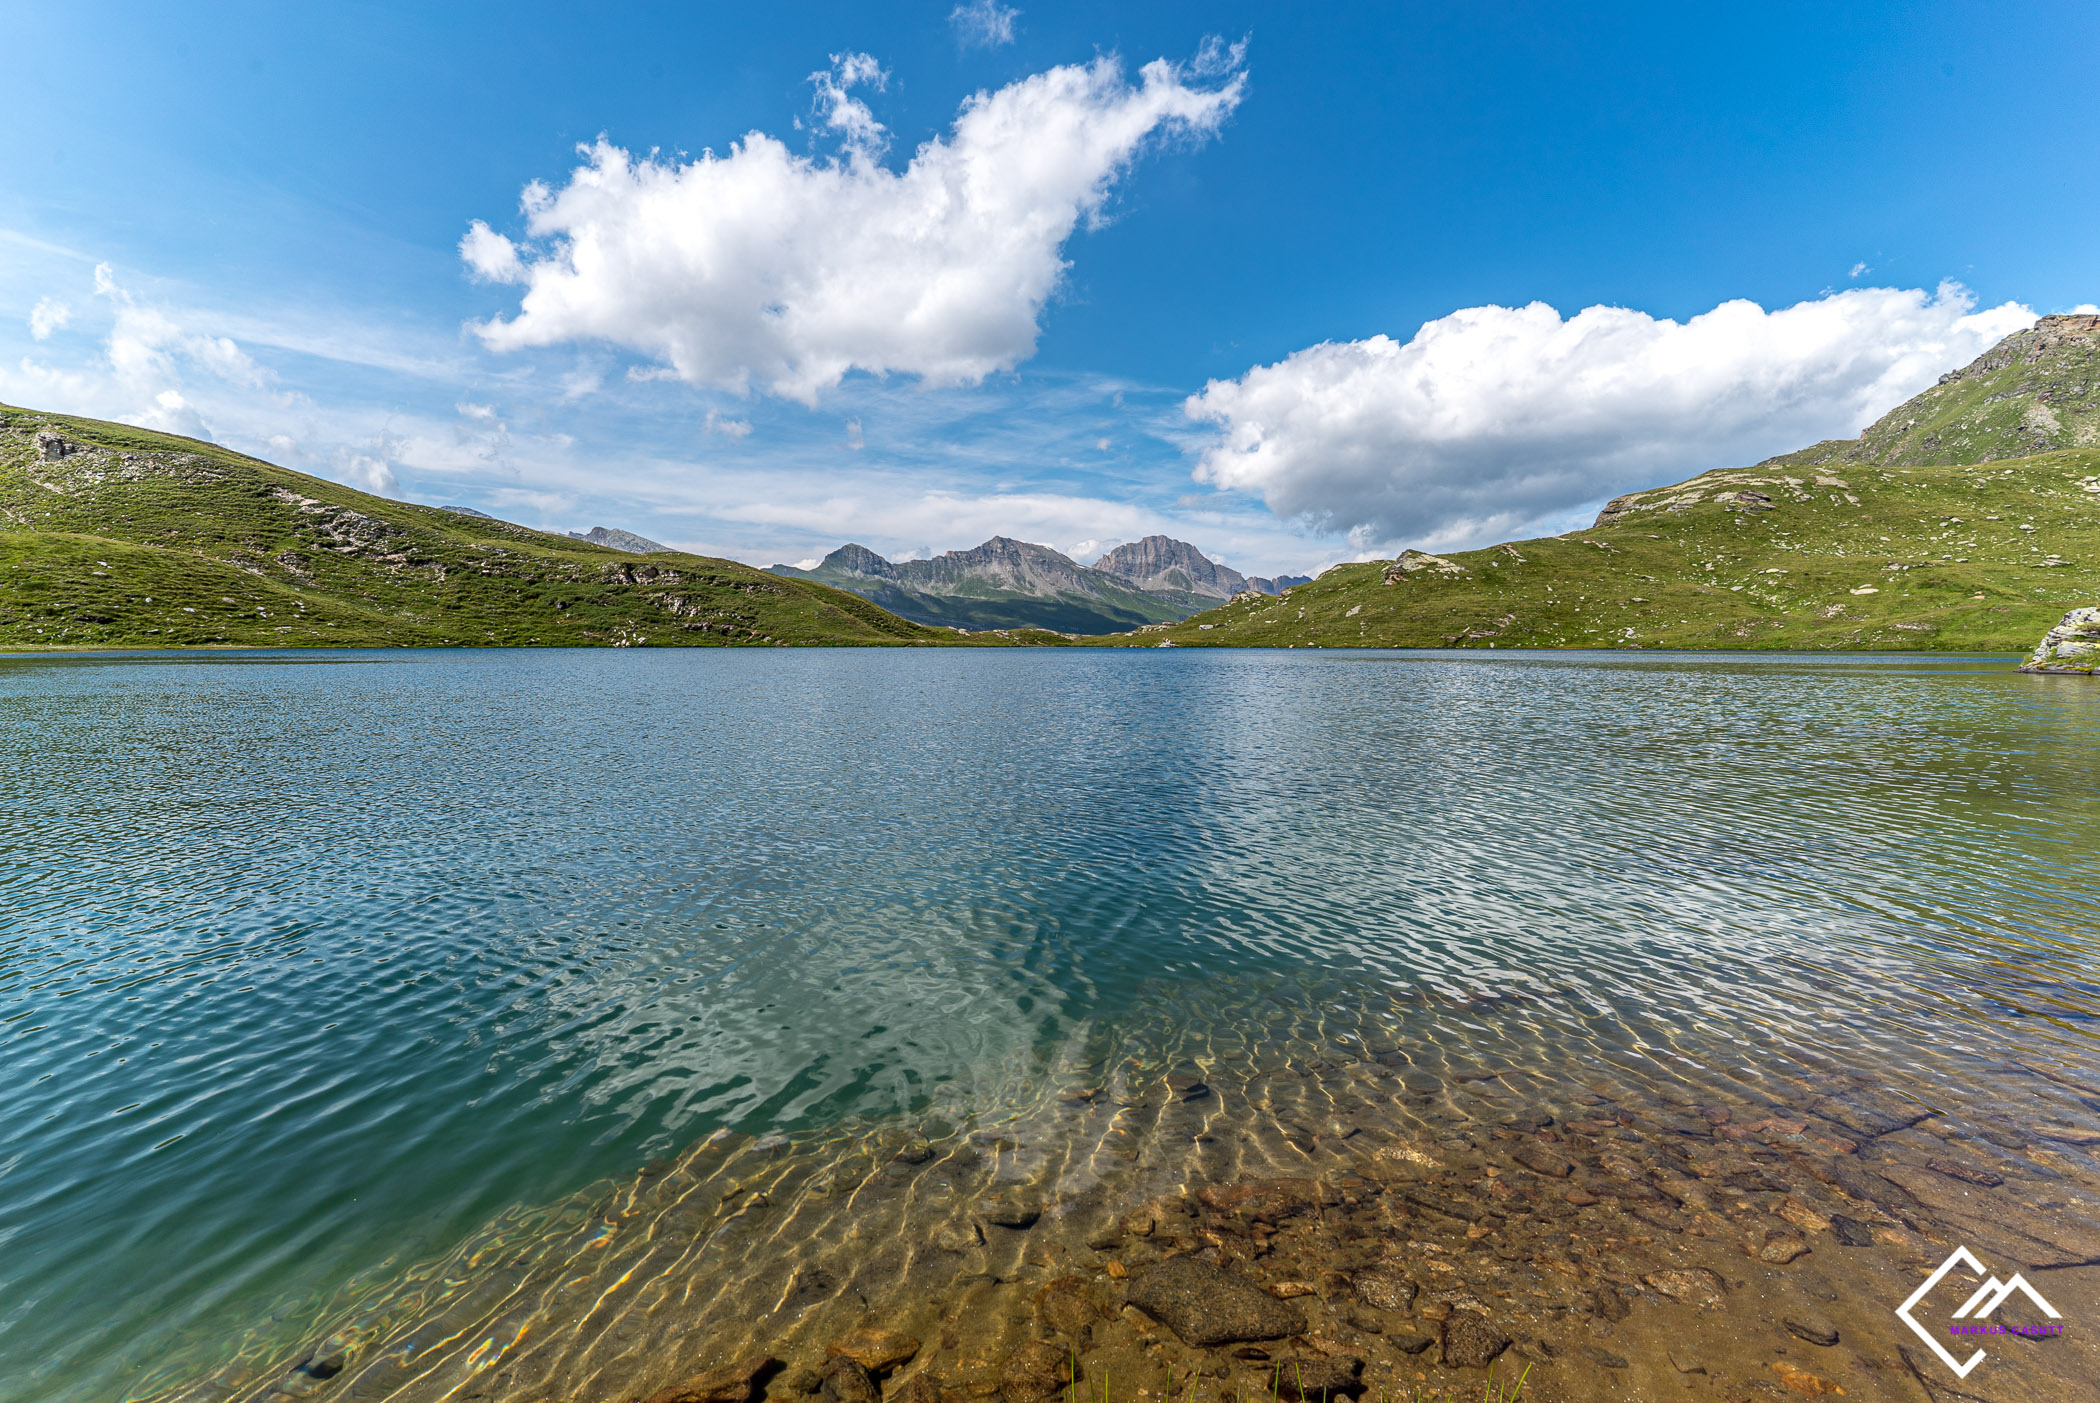 Guraletschsee_a7s_20160804_00005_038_web